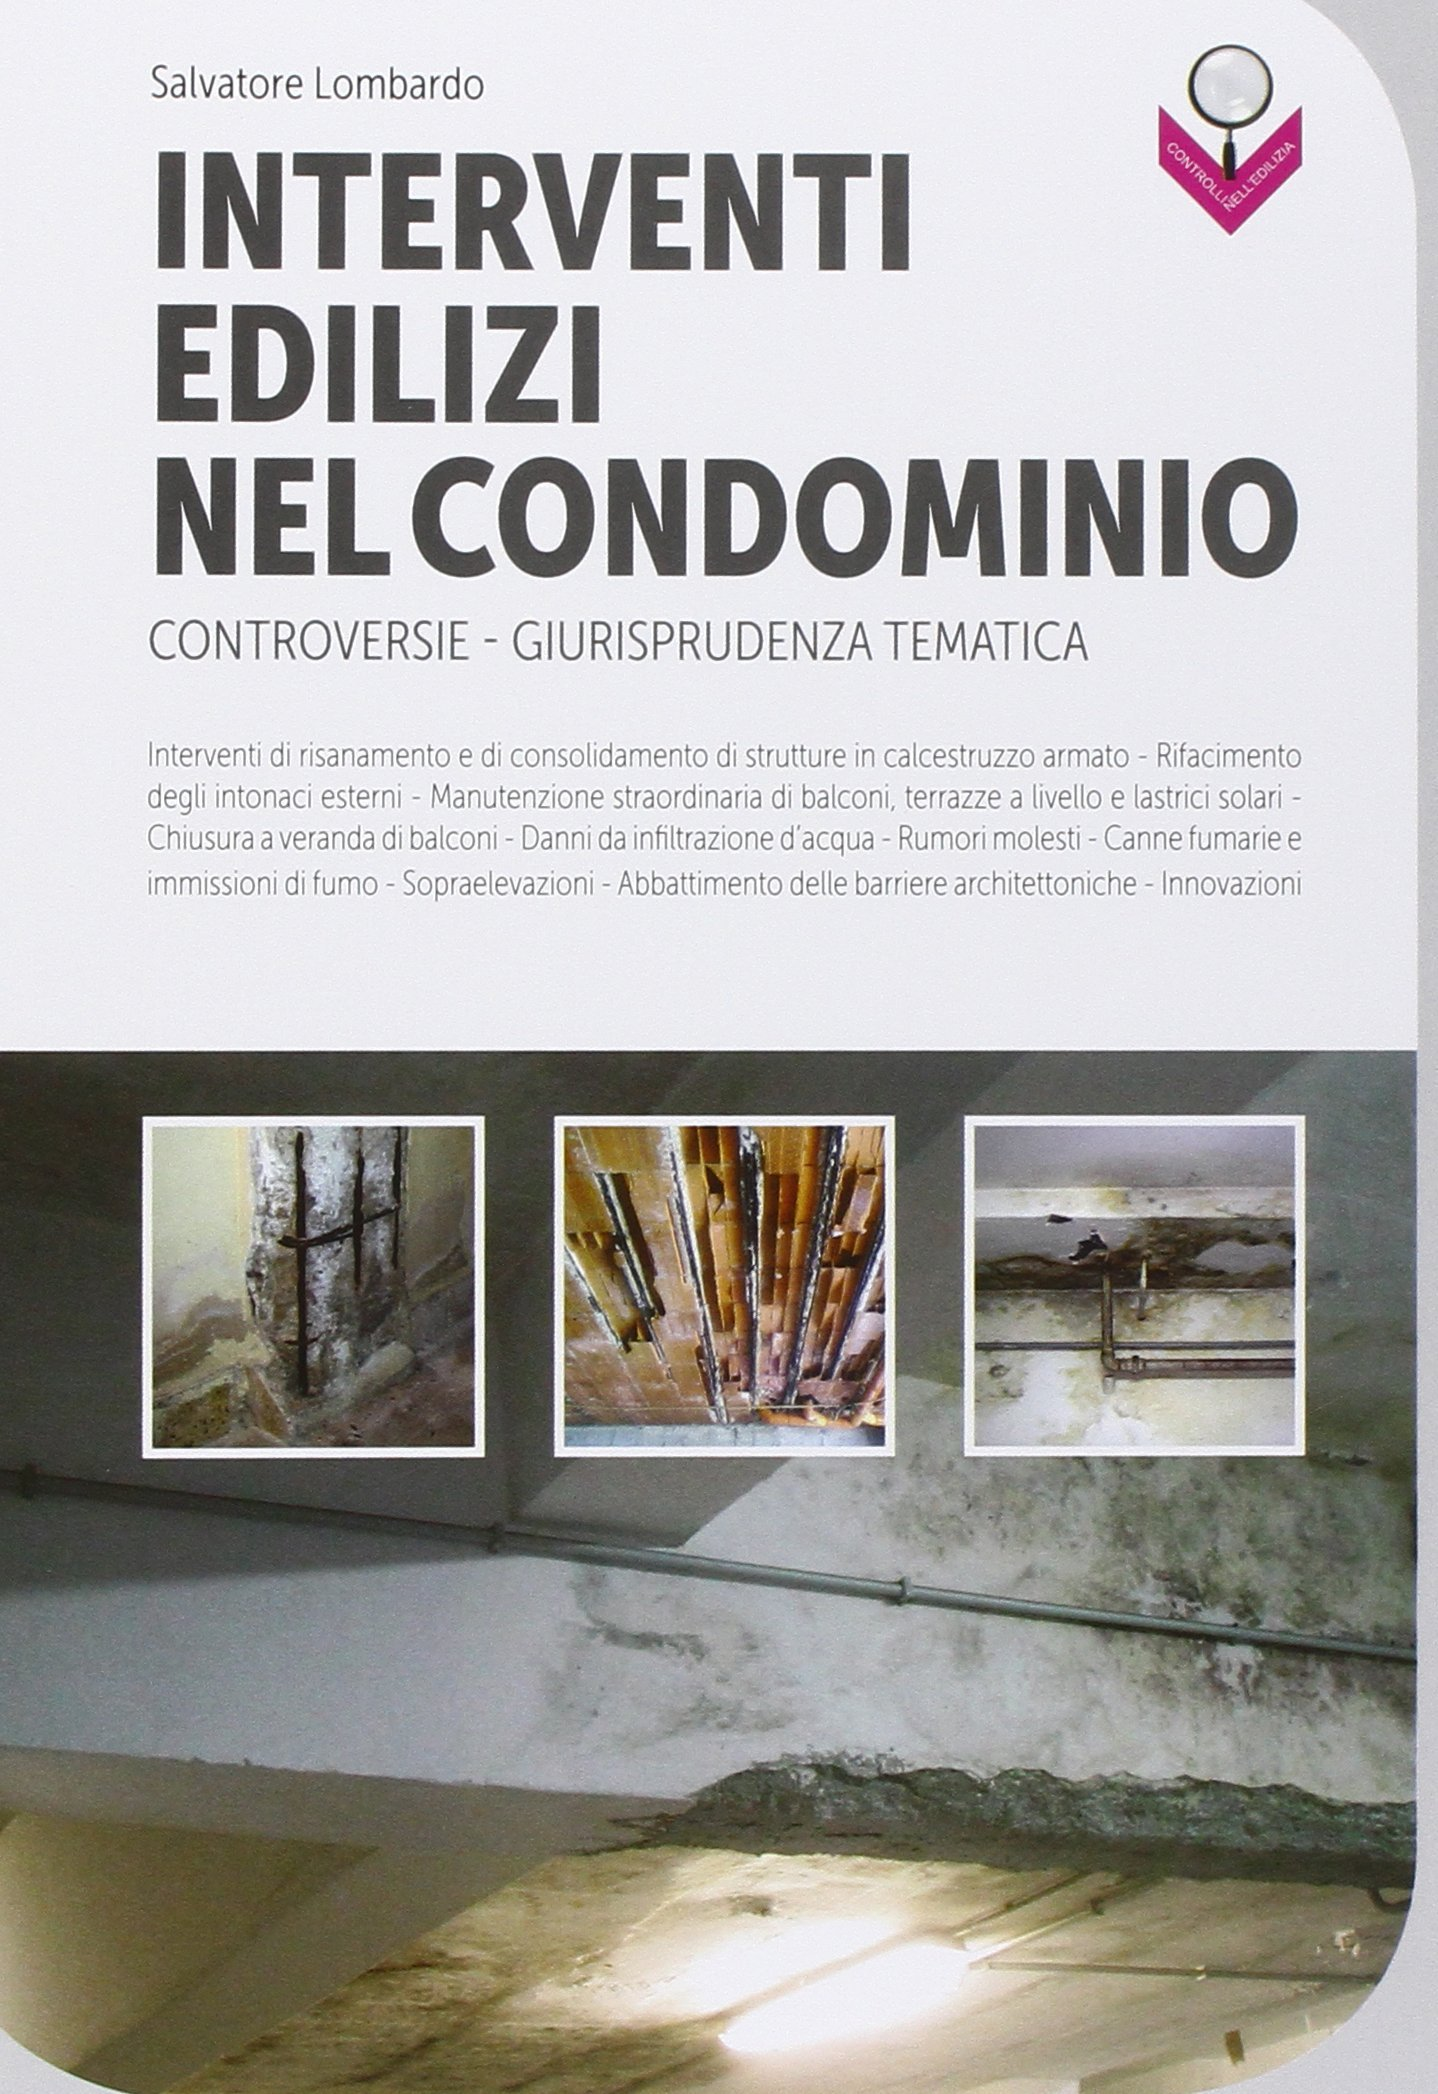 Interventi Edilizi Nel Condominio 9788857905815 Amazon Com